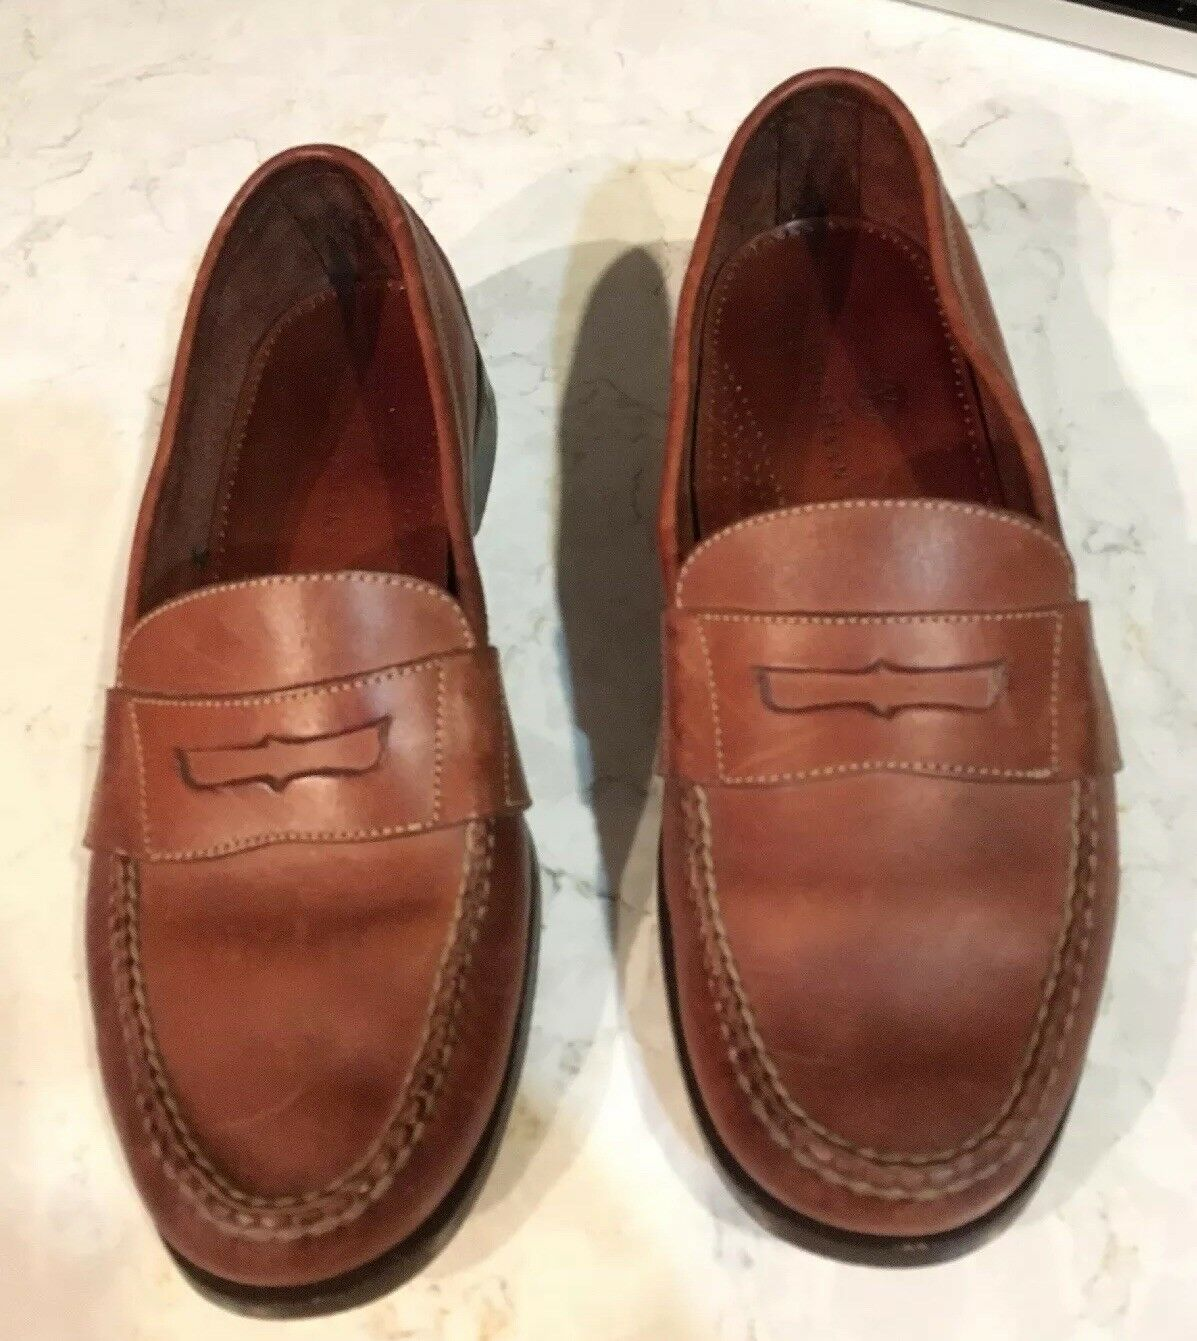 COLE HAAN Men Slip On Moc-Toe Penny Loafers Size 11 D Brown Leather